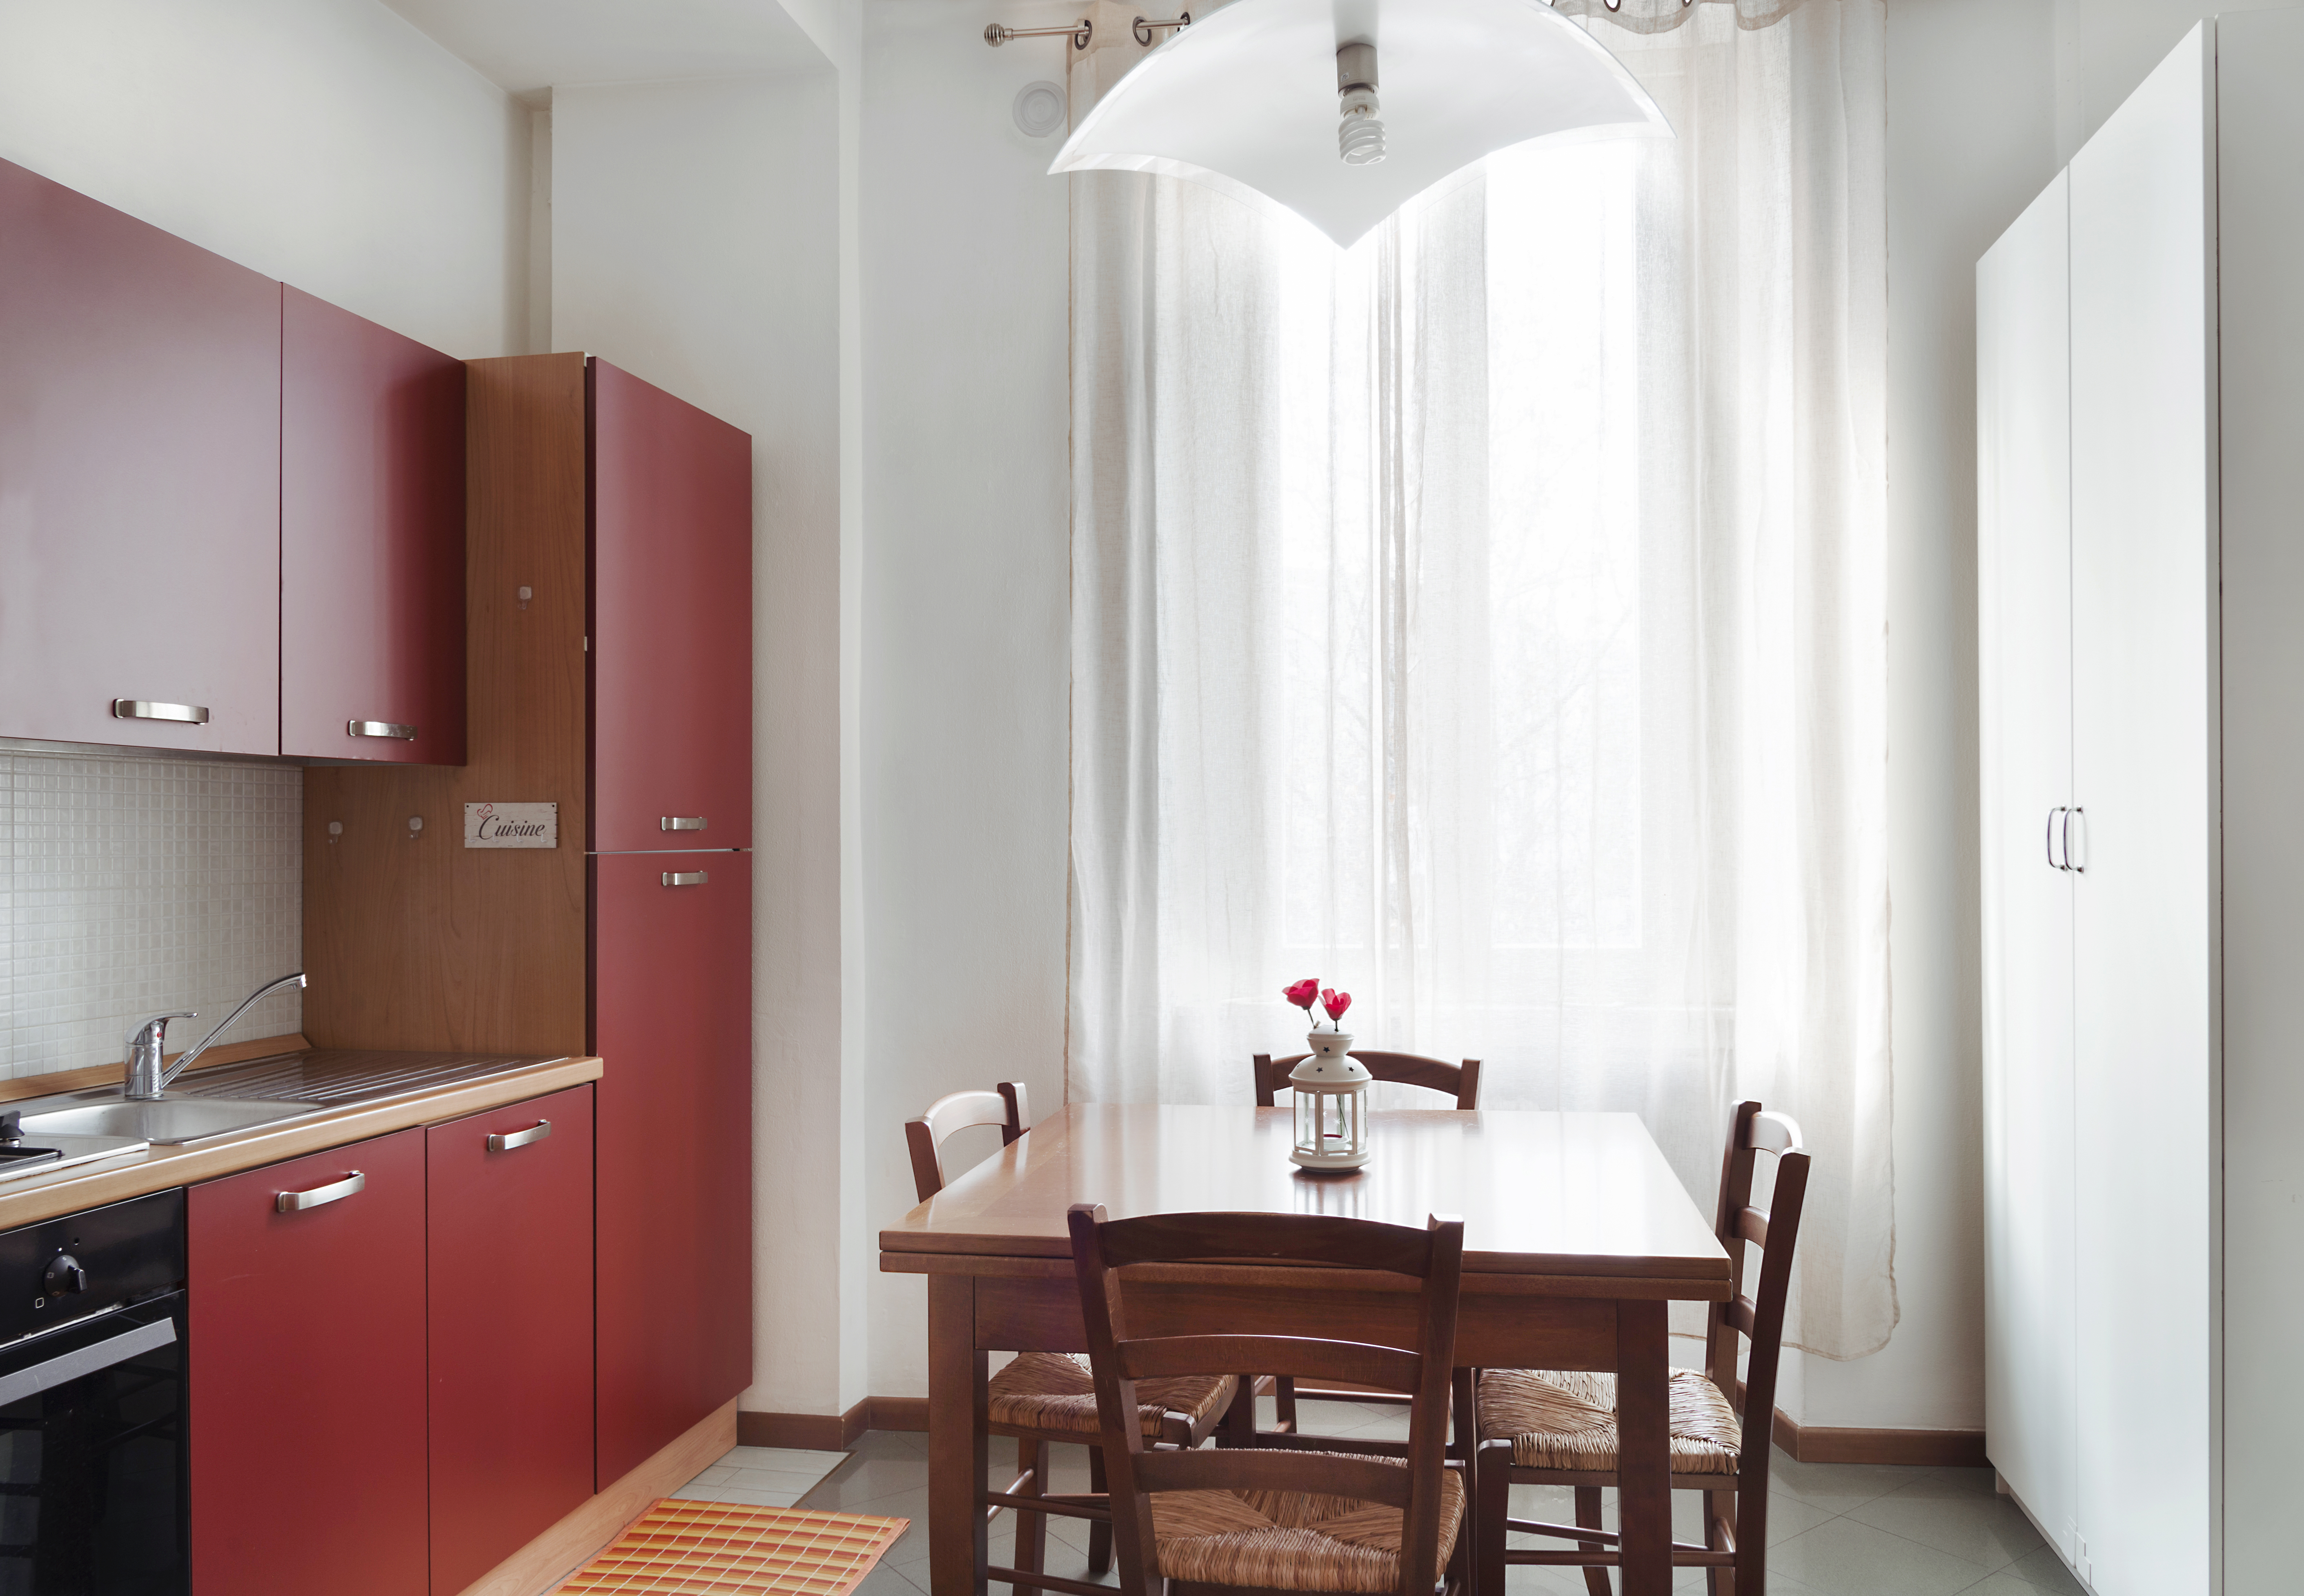 Student Apartment for rent in Viale Papiniano, 43, 2° floor, in Milano, Italy